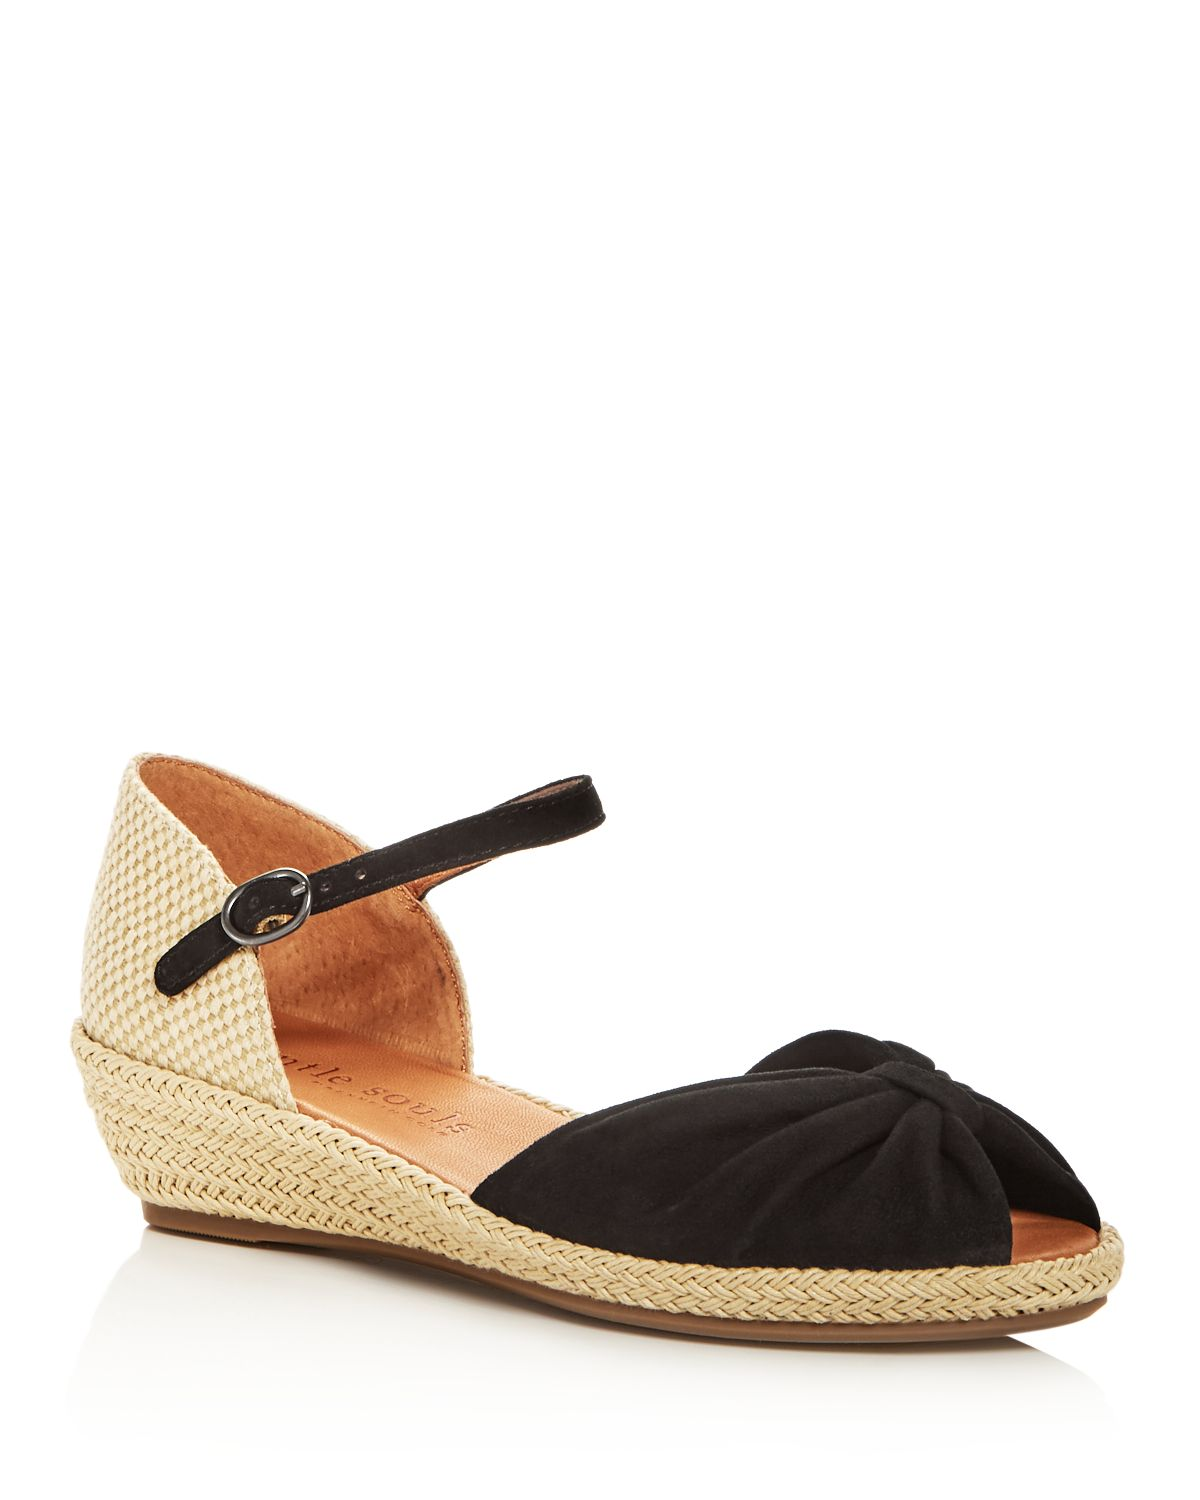 Women's Lucille Suede Demi Wedge Espadrille Sandals by Gentle Souls By Kenneth Cole